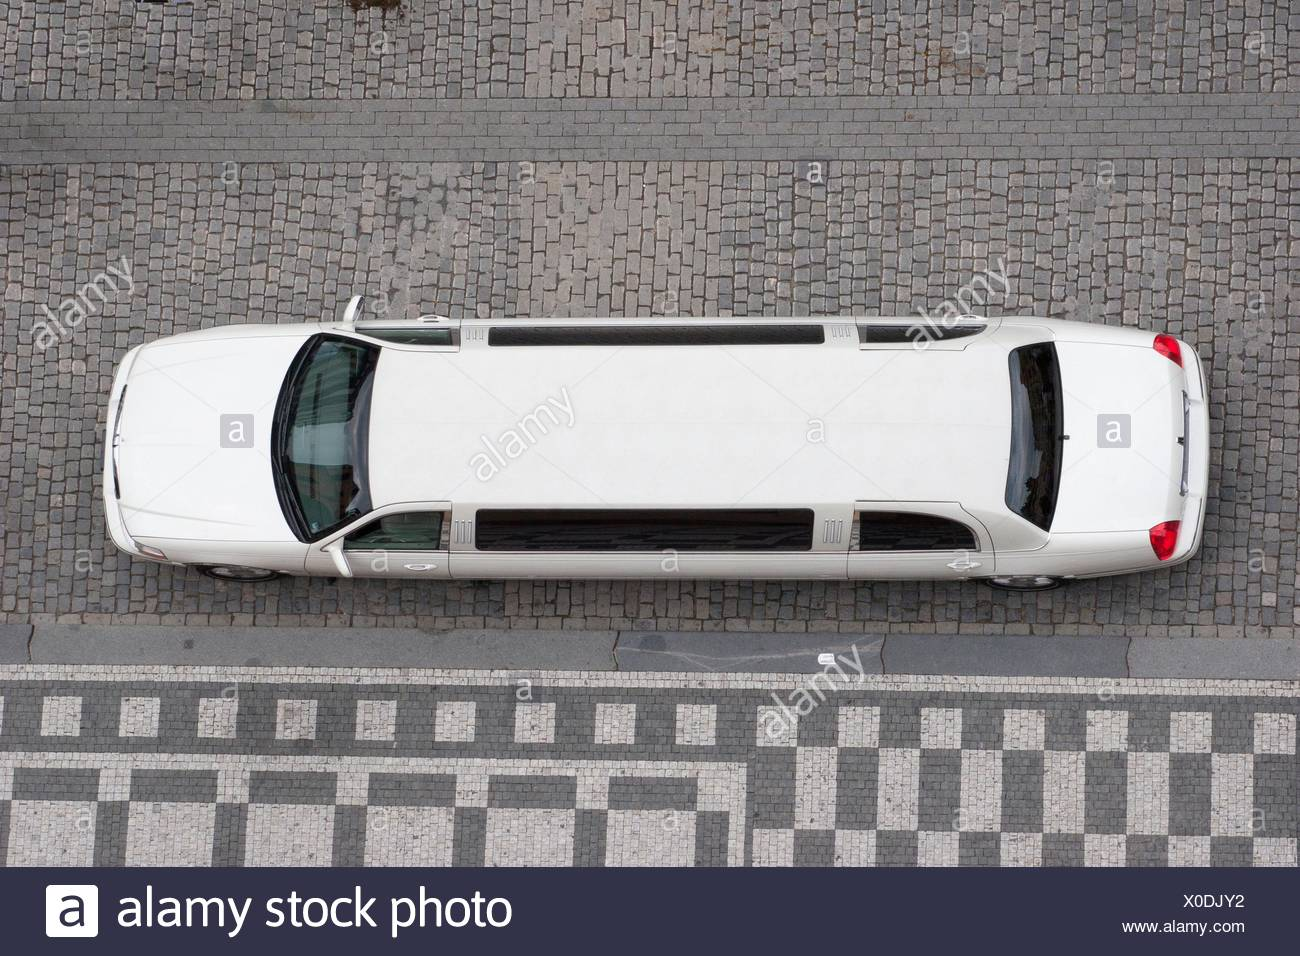 Elevated view of a limousine, Prague, Czech Republic - Stock Image